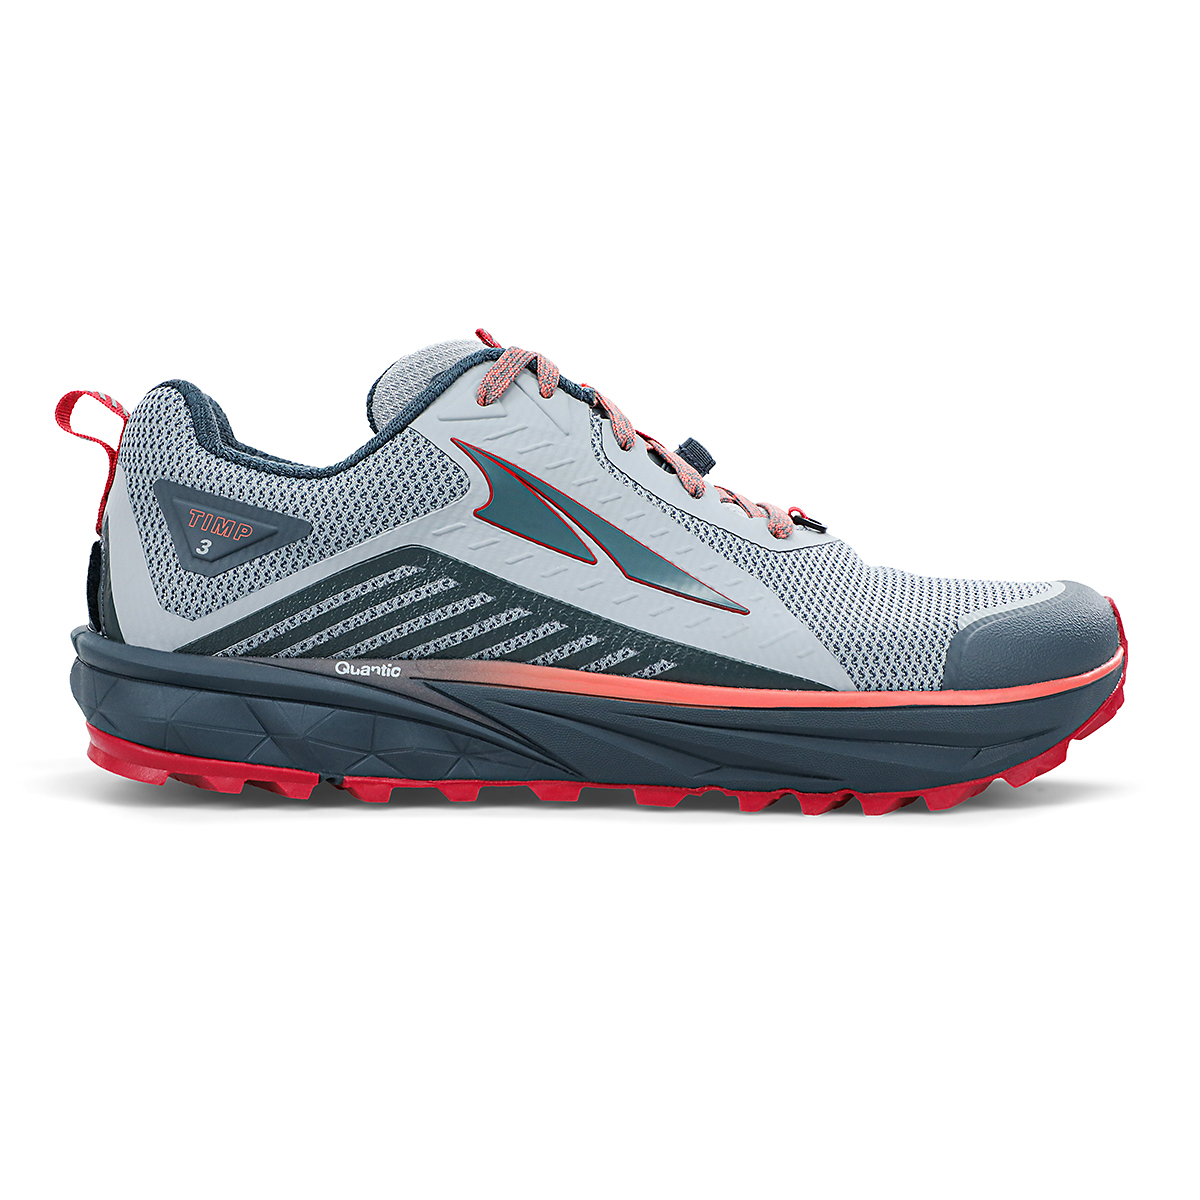 Women's Altra Timp 3 Trail Running Shoe - Color: Gray/Pink - Size: 5.5 - Width: Regular, Gray/Pink, large, image 1